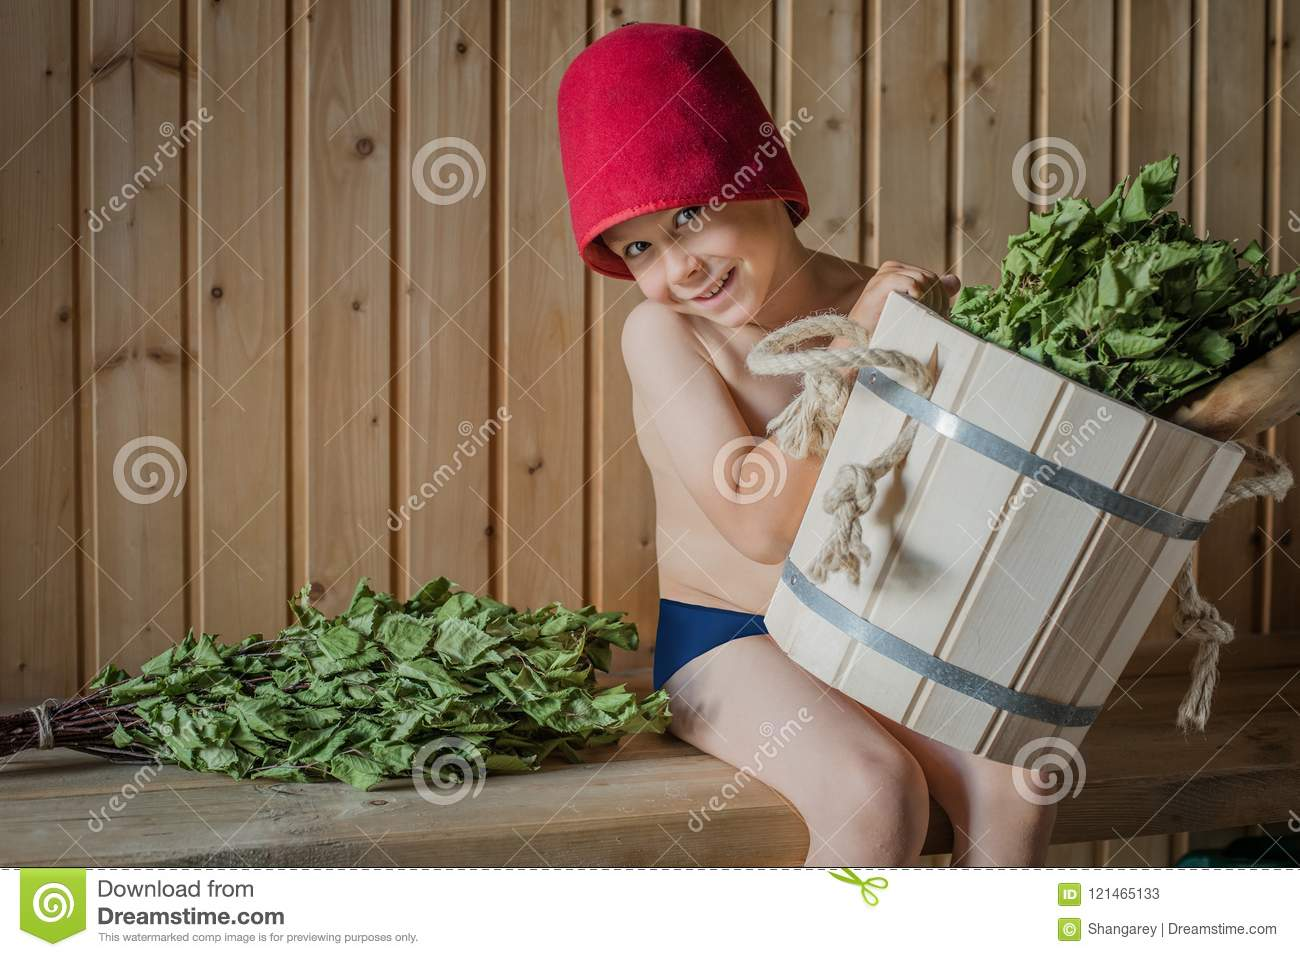 Child In A Russian Bath With A Birch Broom Stock Image - Image of ...